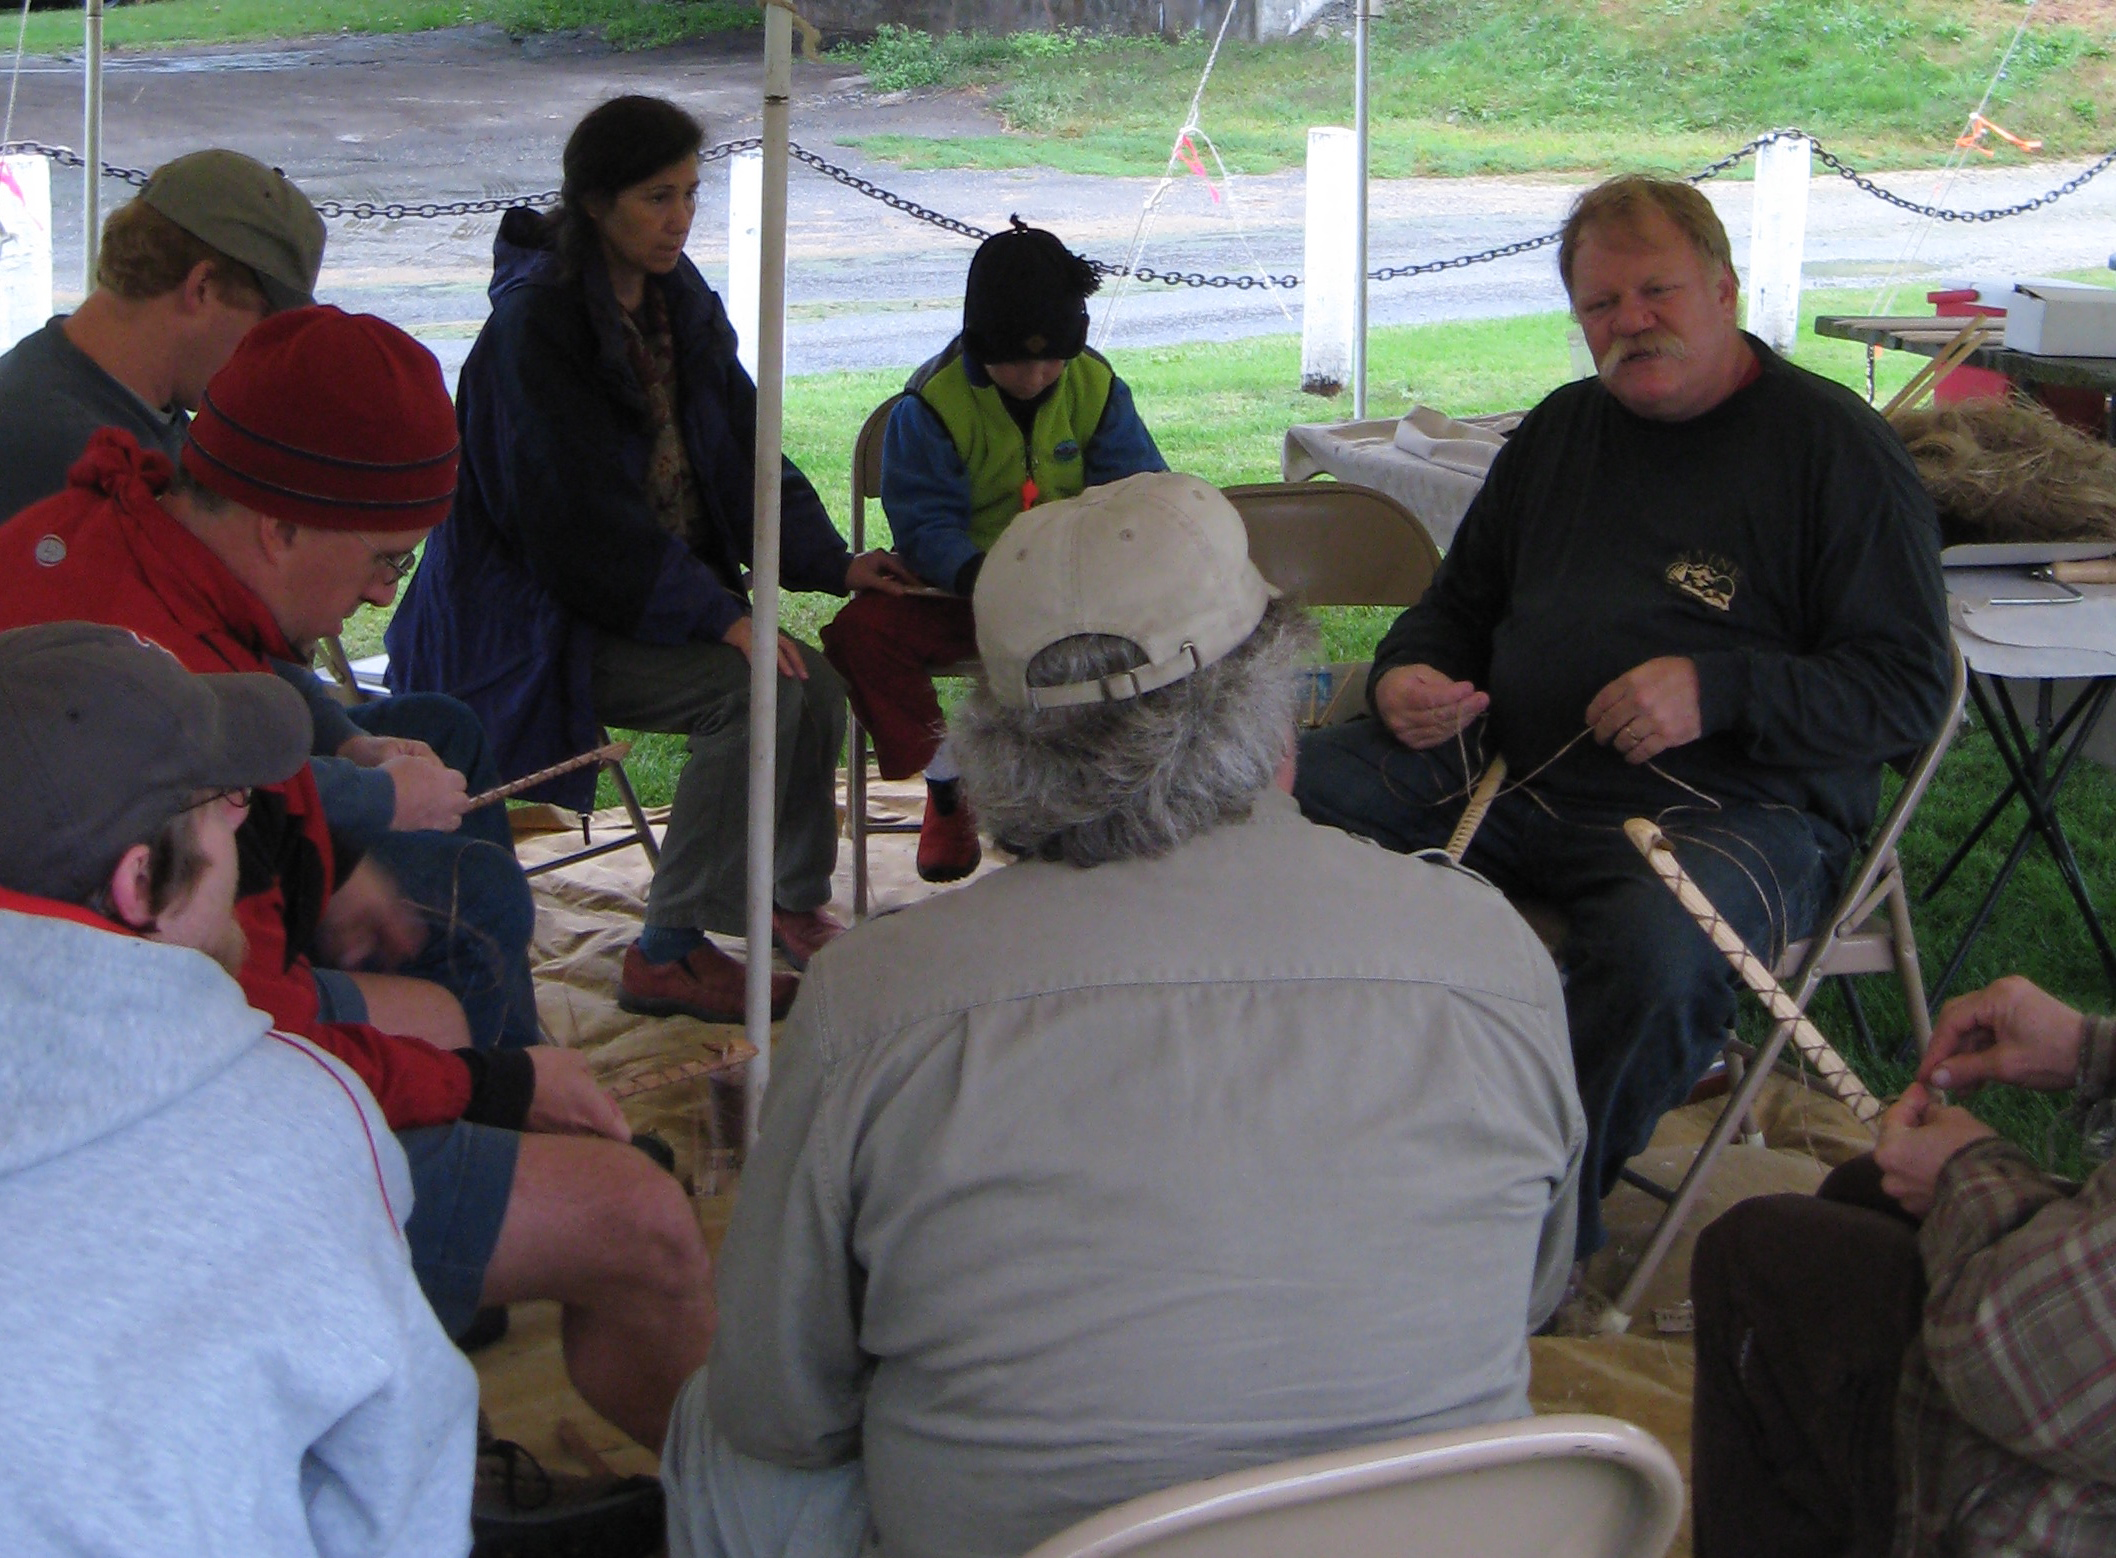 Bob Berg leads an atlatl workshop in Vermont